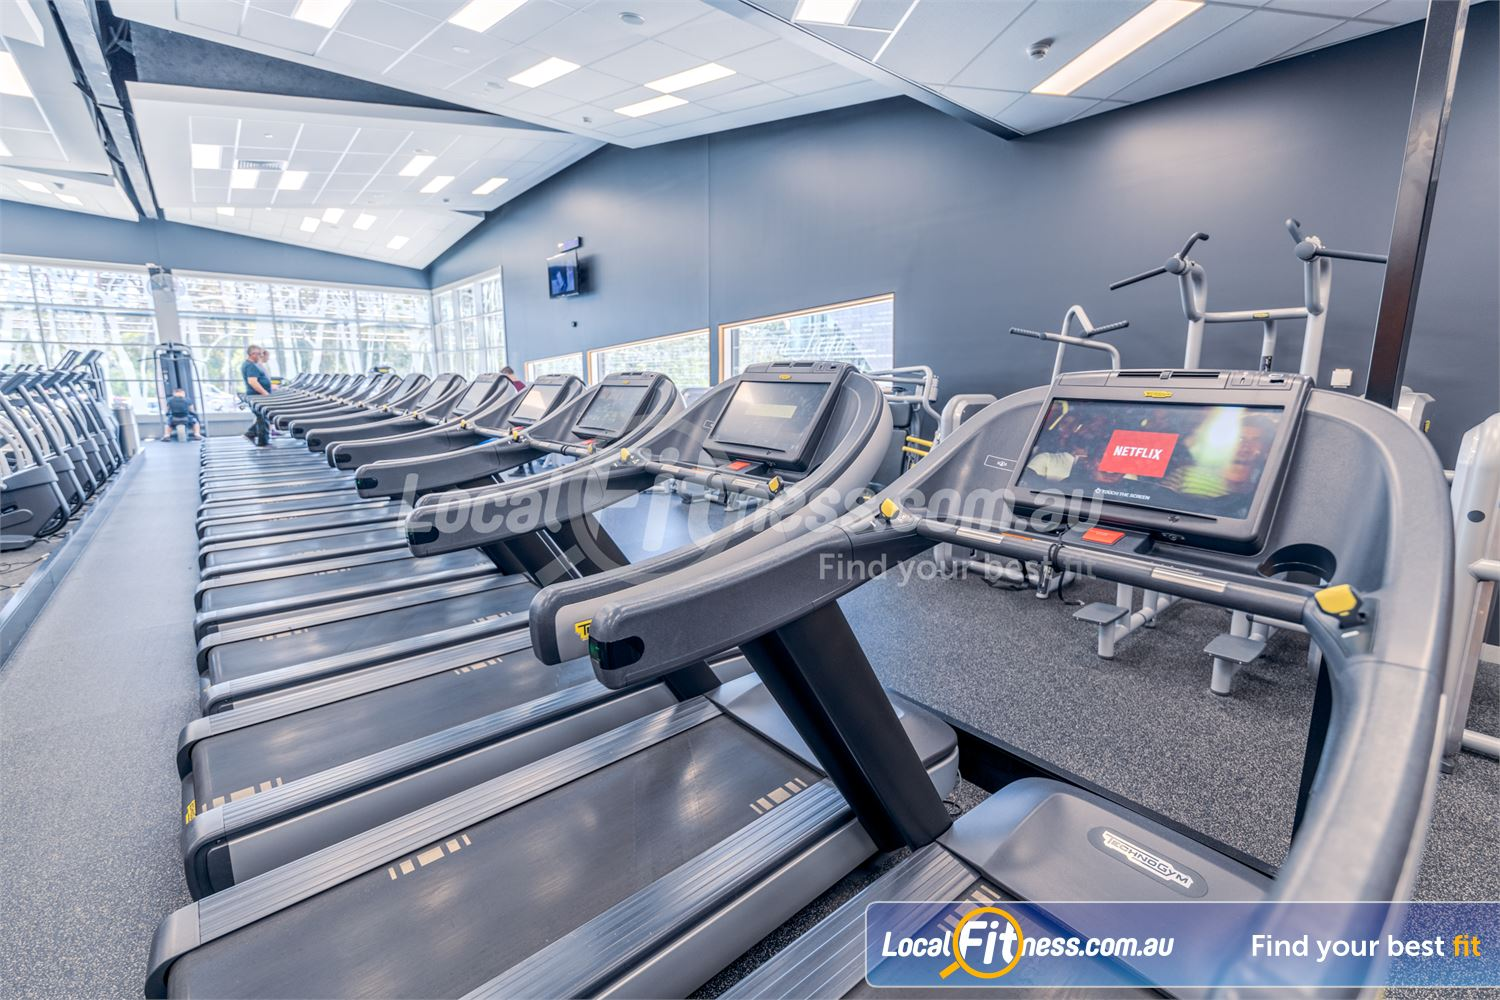 Eltham Leisure Centre Eltham Our Eltham gym includes $700k of state of the art cardio and gym equipment.